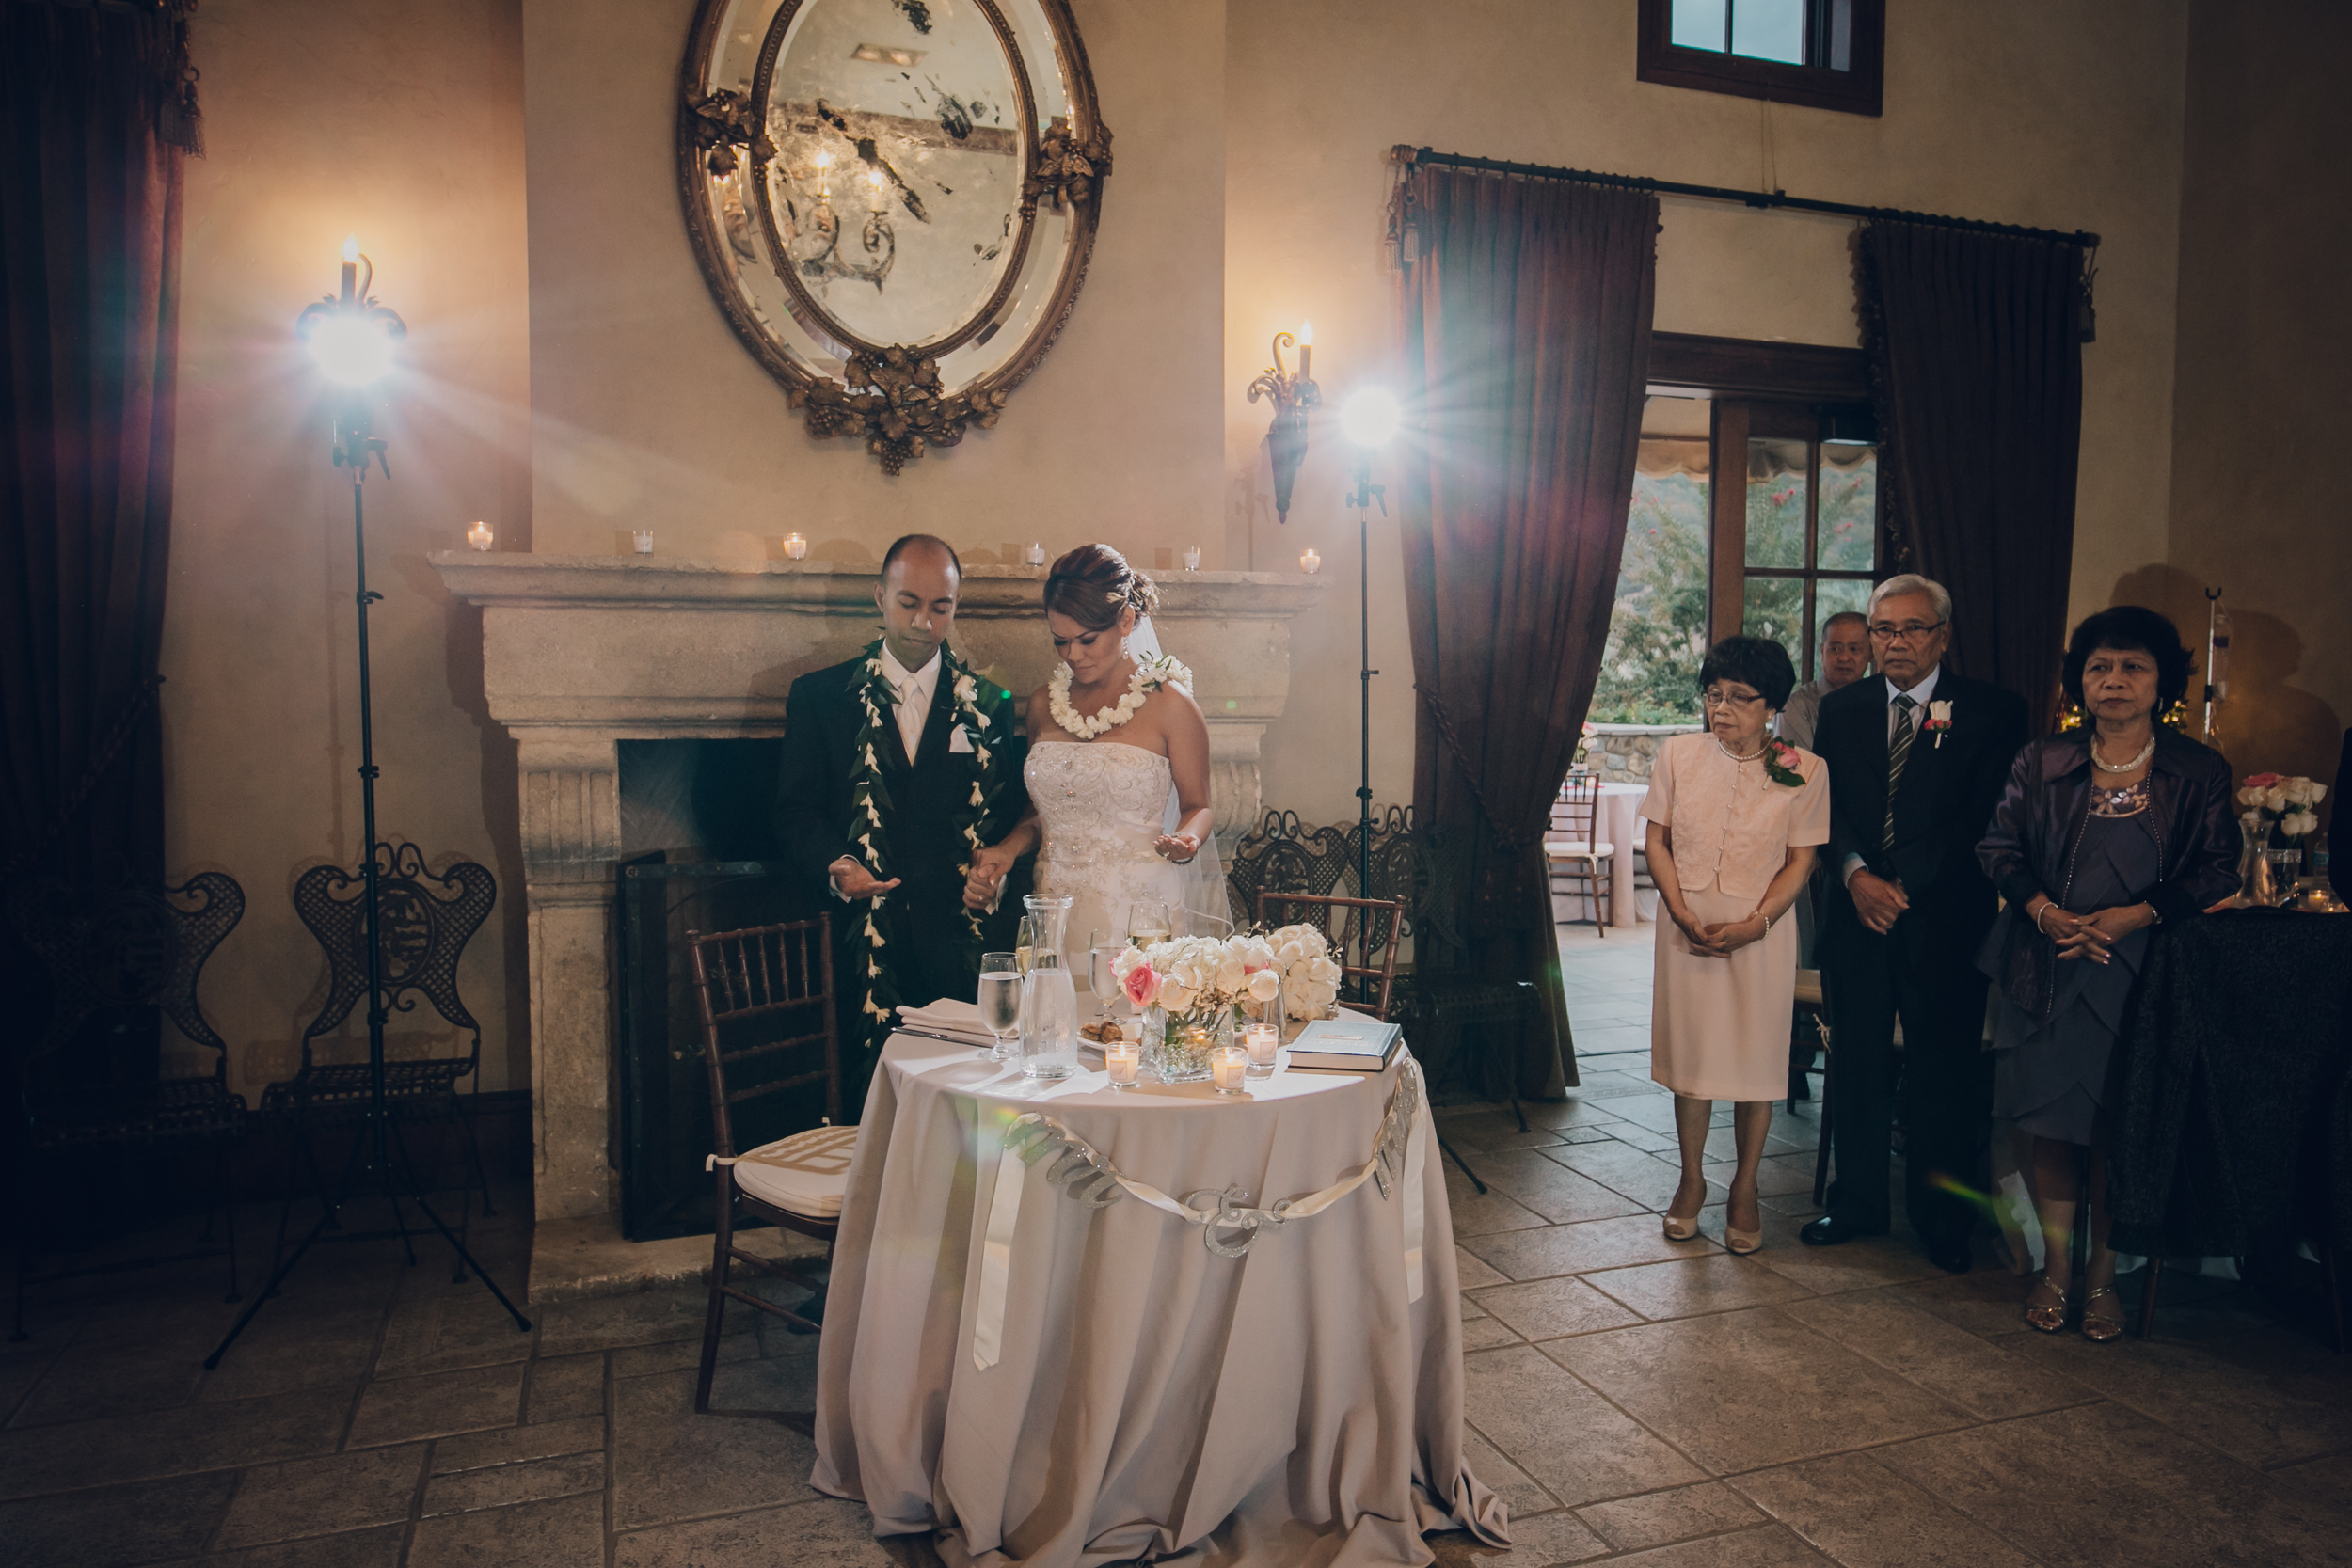 Shiela + Lester's Wedding 9-30-15 996-Edit.jpg